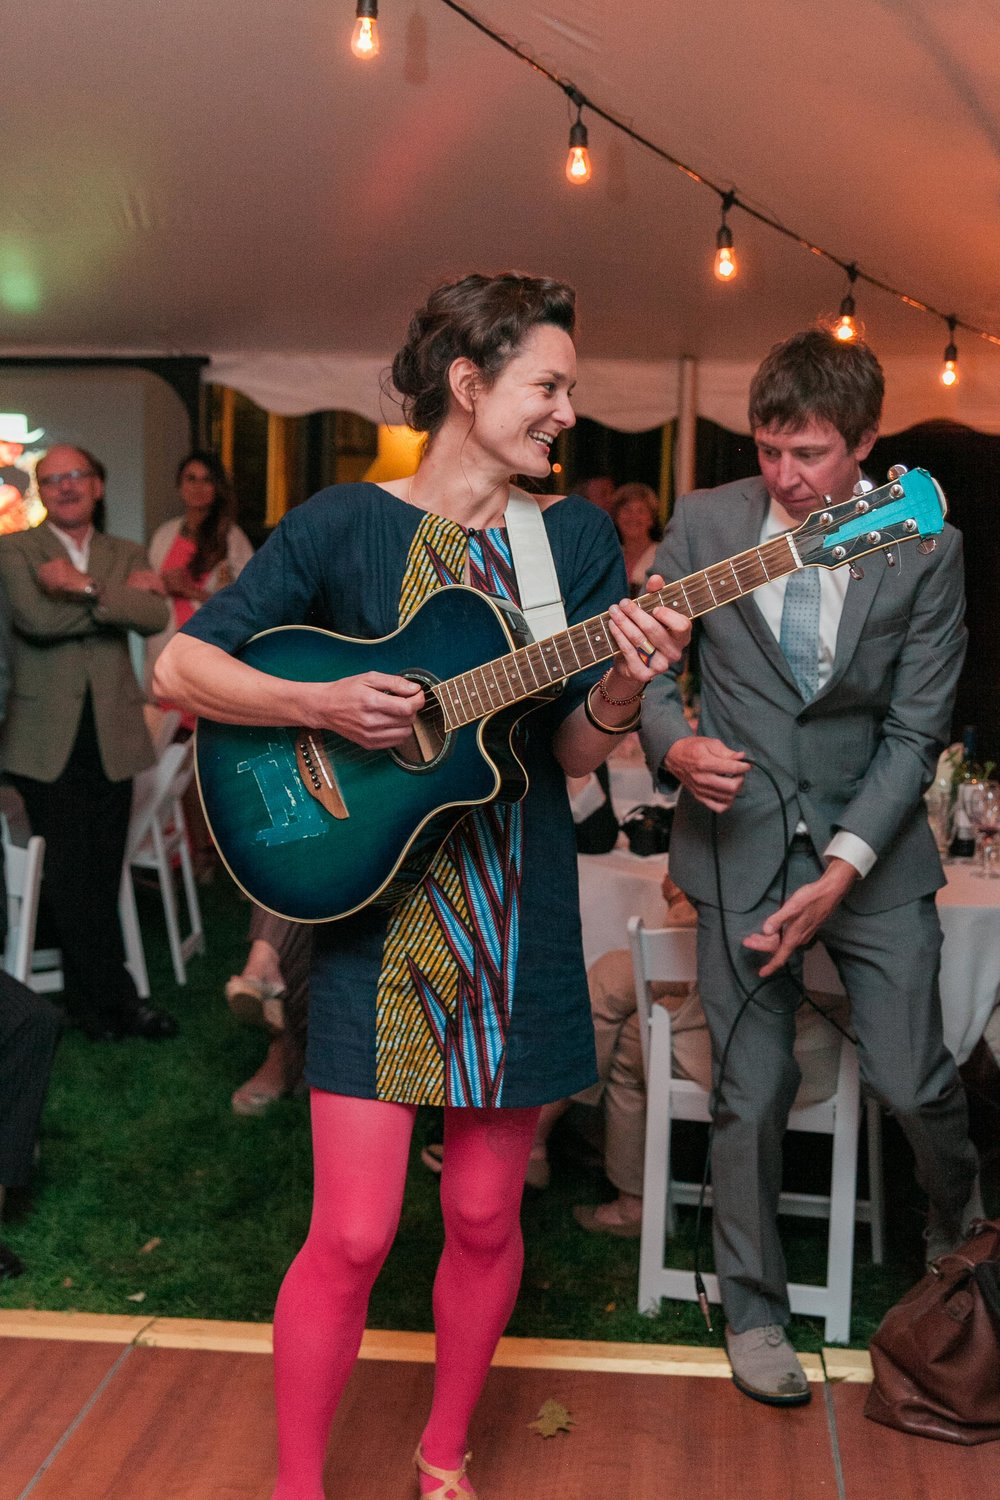 Friend playing guitar and singing at wedding